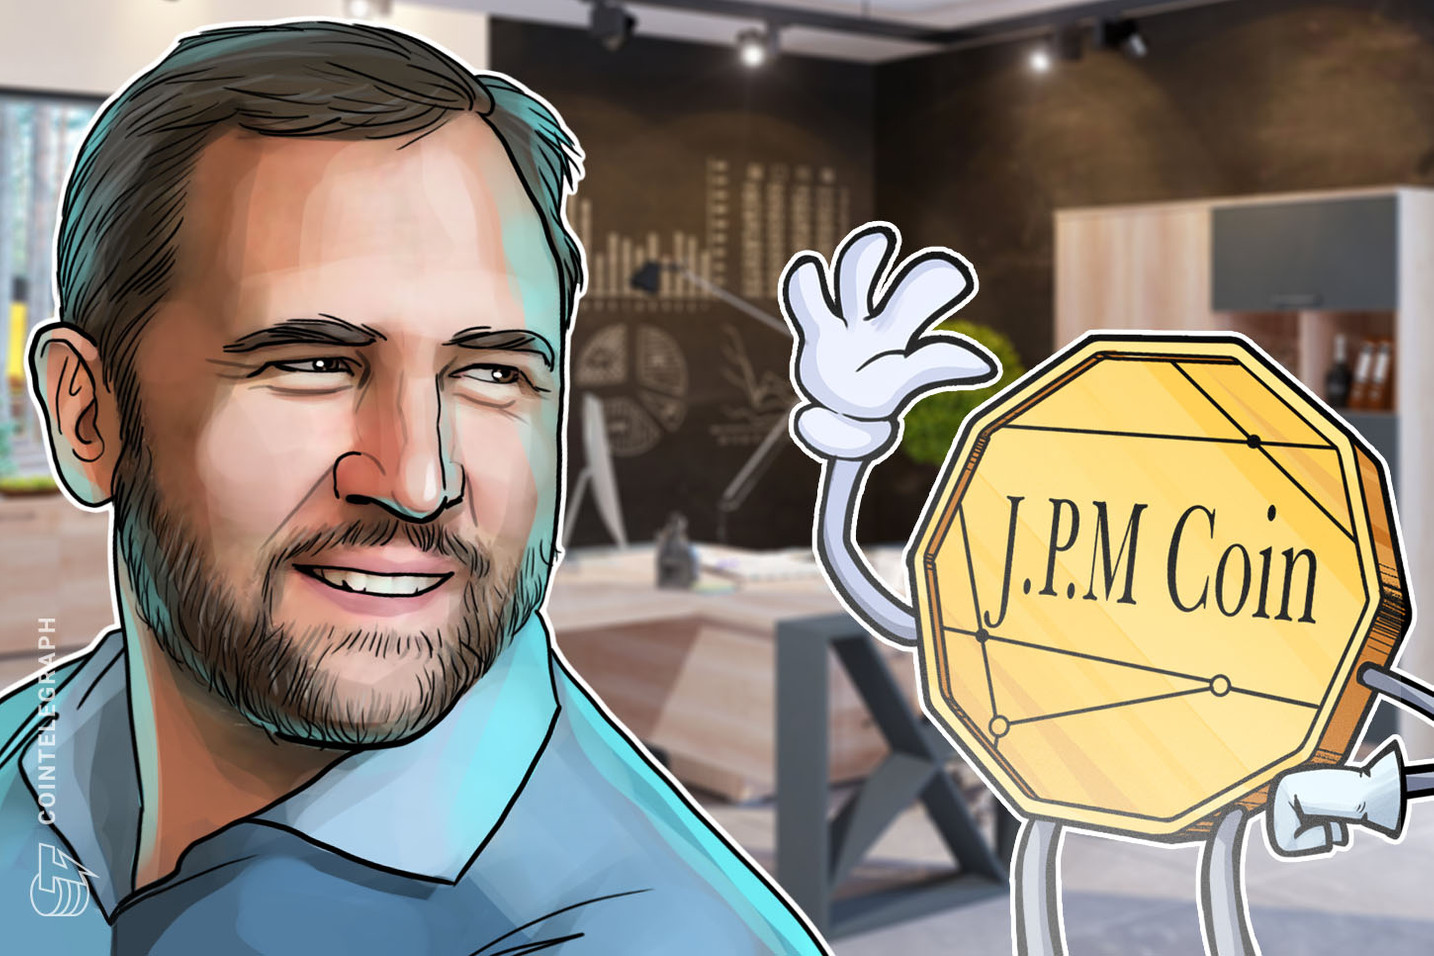 Ripple CEO Brad Garlinghouse Says JPMorgan Coin 'Misses the Point' of Crypto